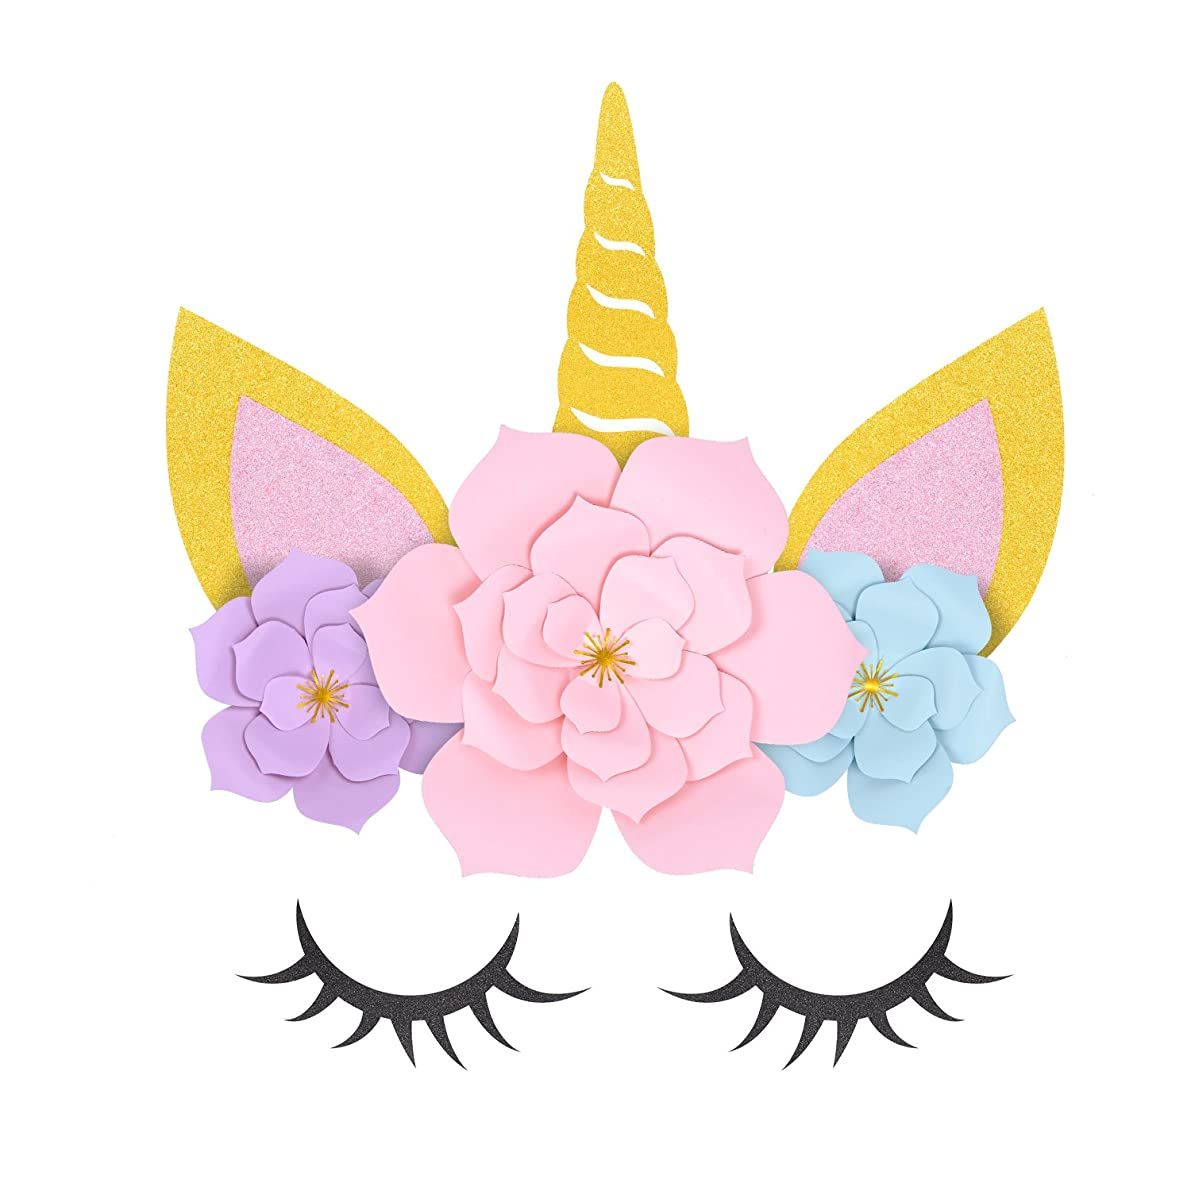 MORDUN Unicorn Party Supplies & Decorations Backdrop For Girls Birthday Party Baby Shower - DIY Unicorn Flower Backdrop